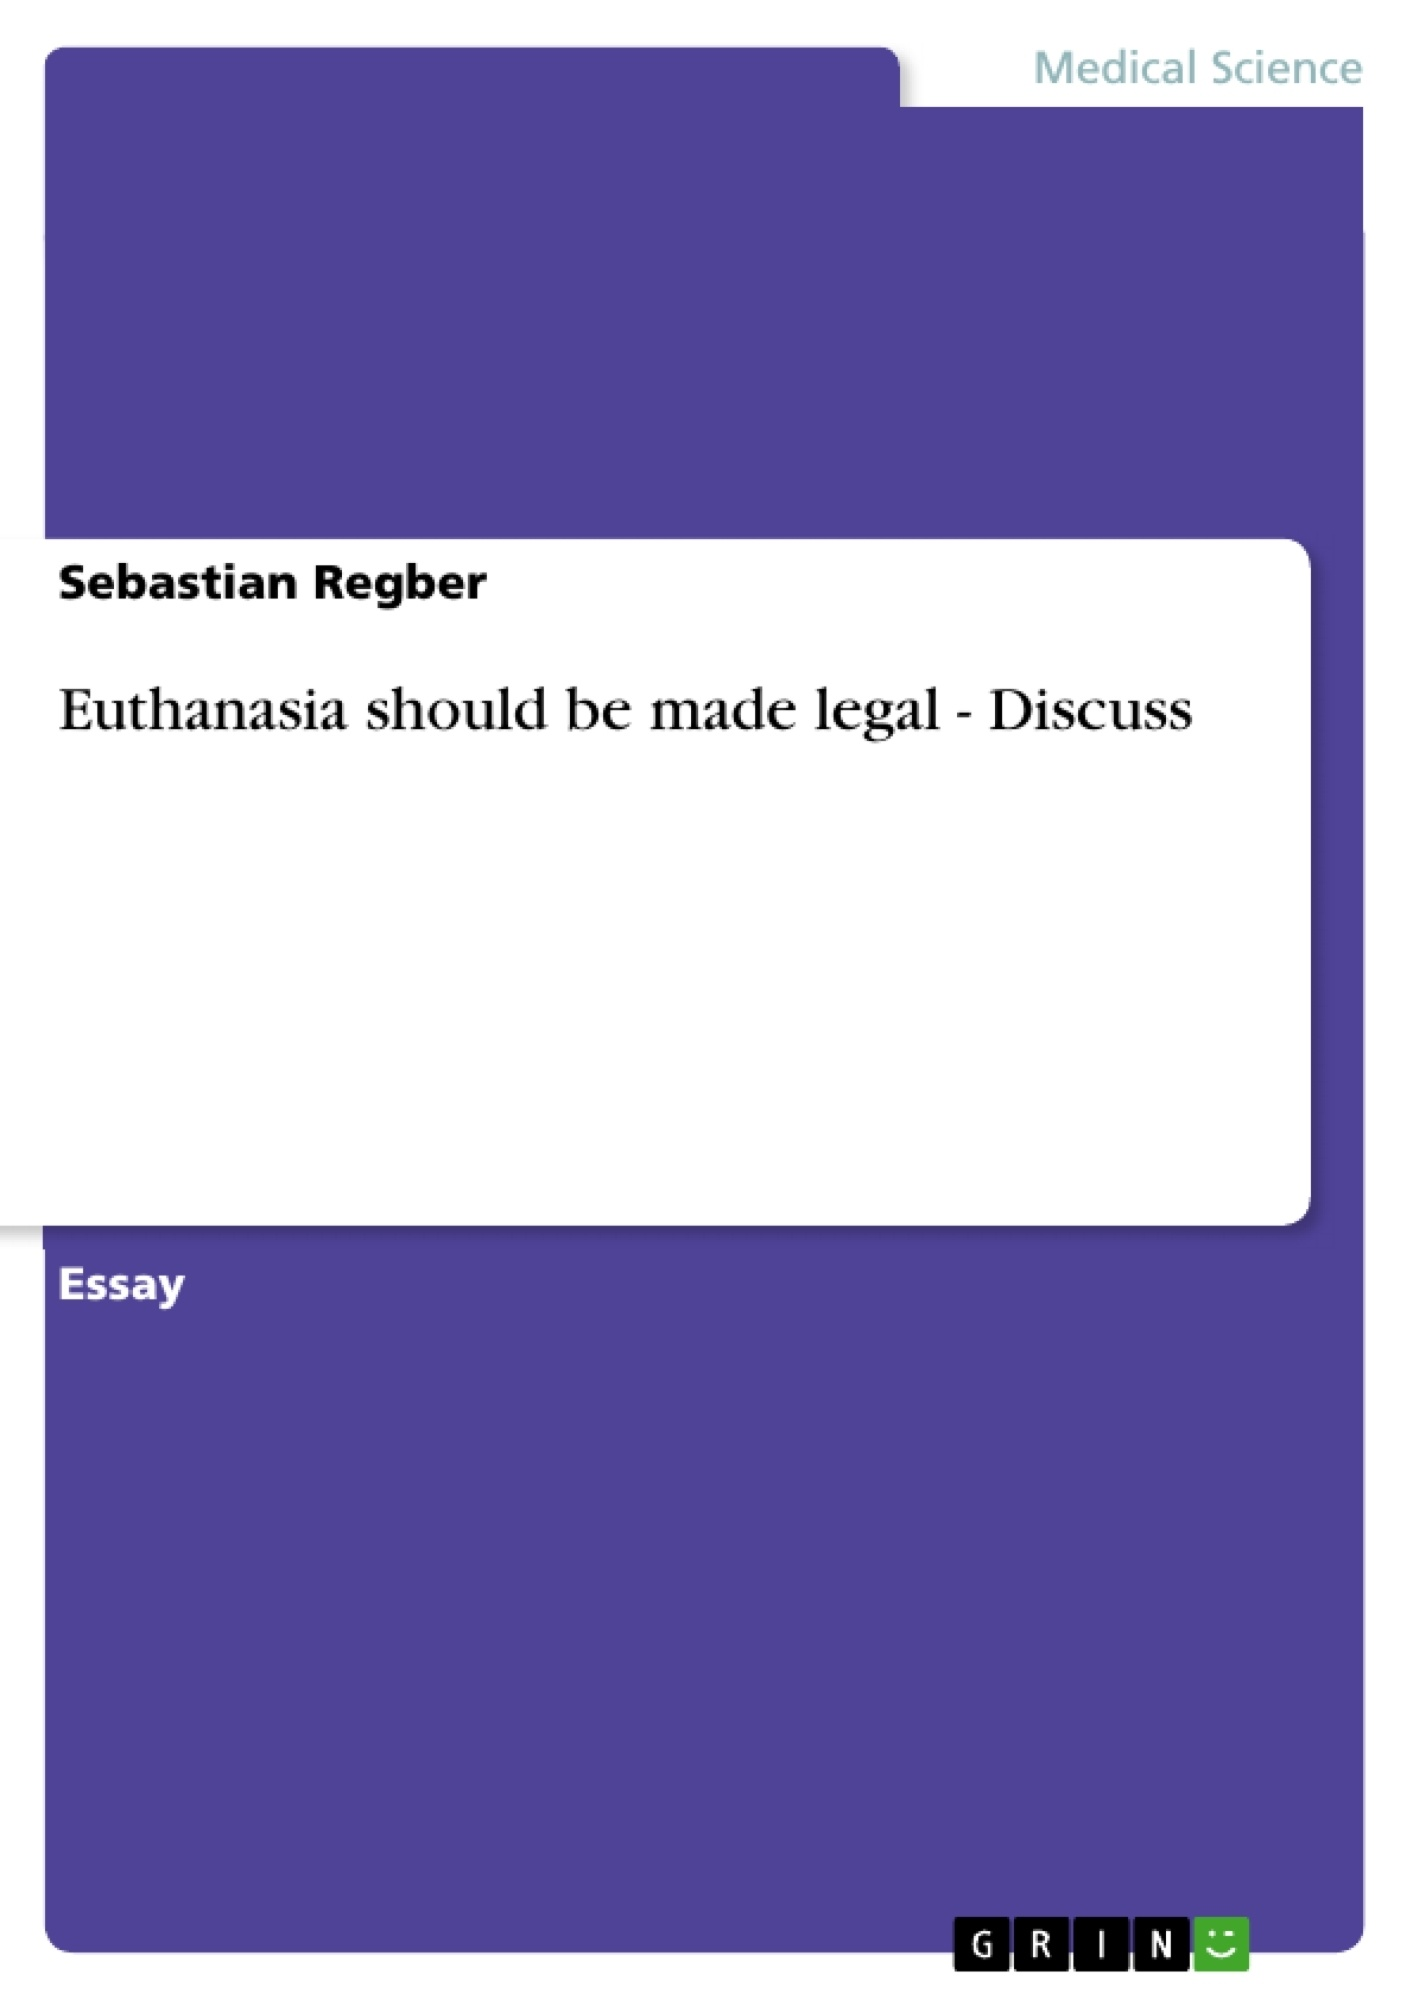 euthanasia should be made legal discuss publish your master s euthanasia should be made legal discuss publish your master s thesis bachelor s thesis essay or term paper